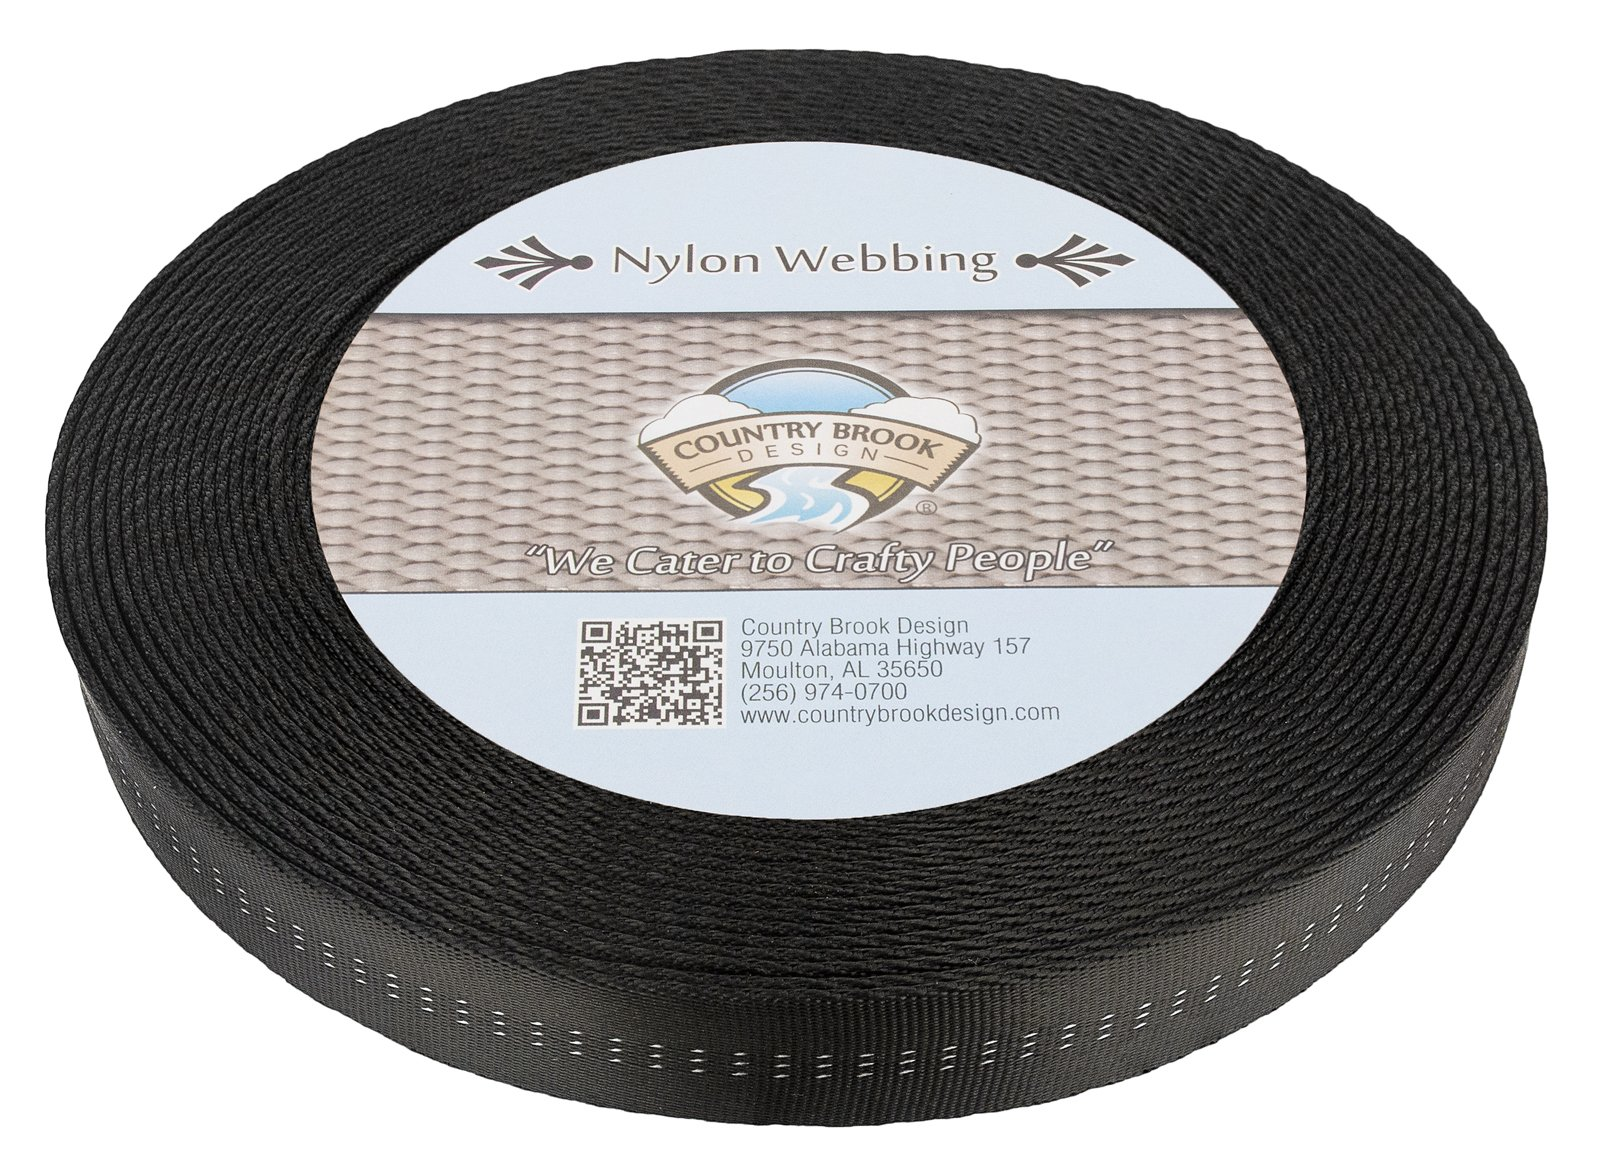 Country Brook Design 1 Inch Black Climbing Spec Tubular Nylon Webbing, 50 Yards by Country Brook Design (Image #1)